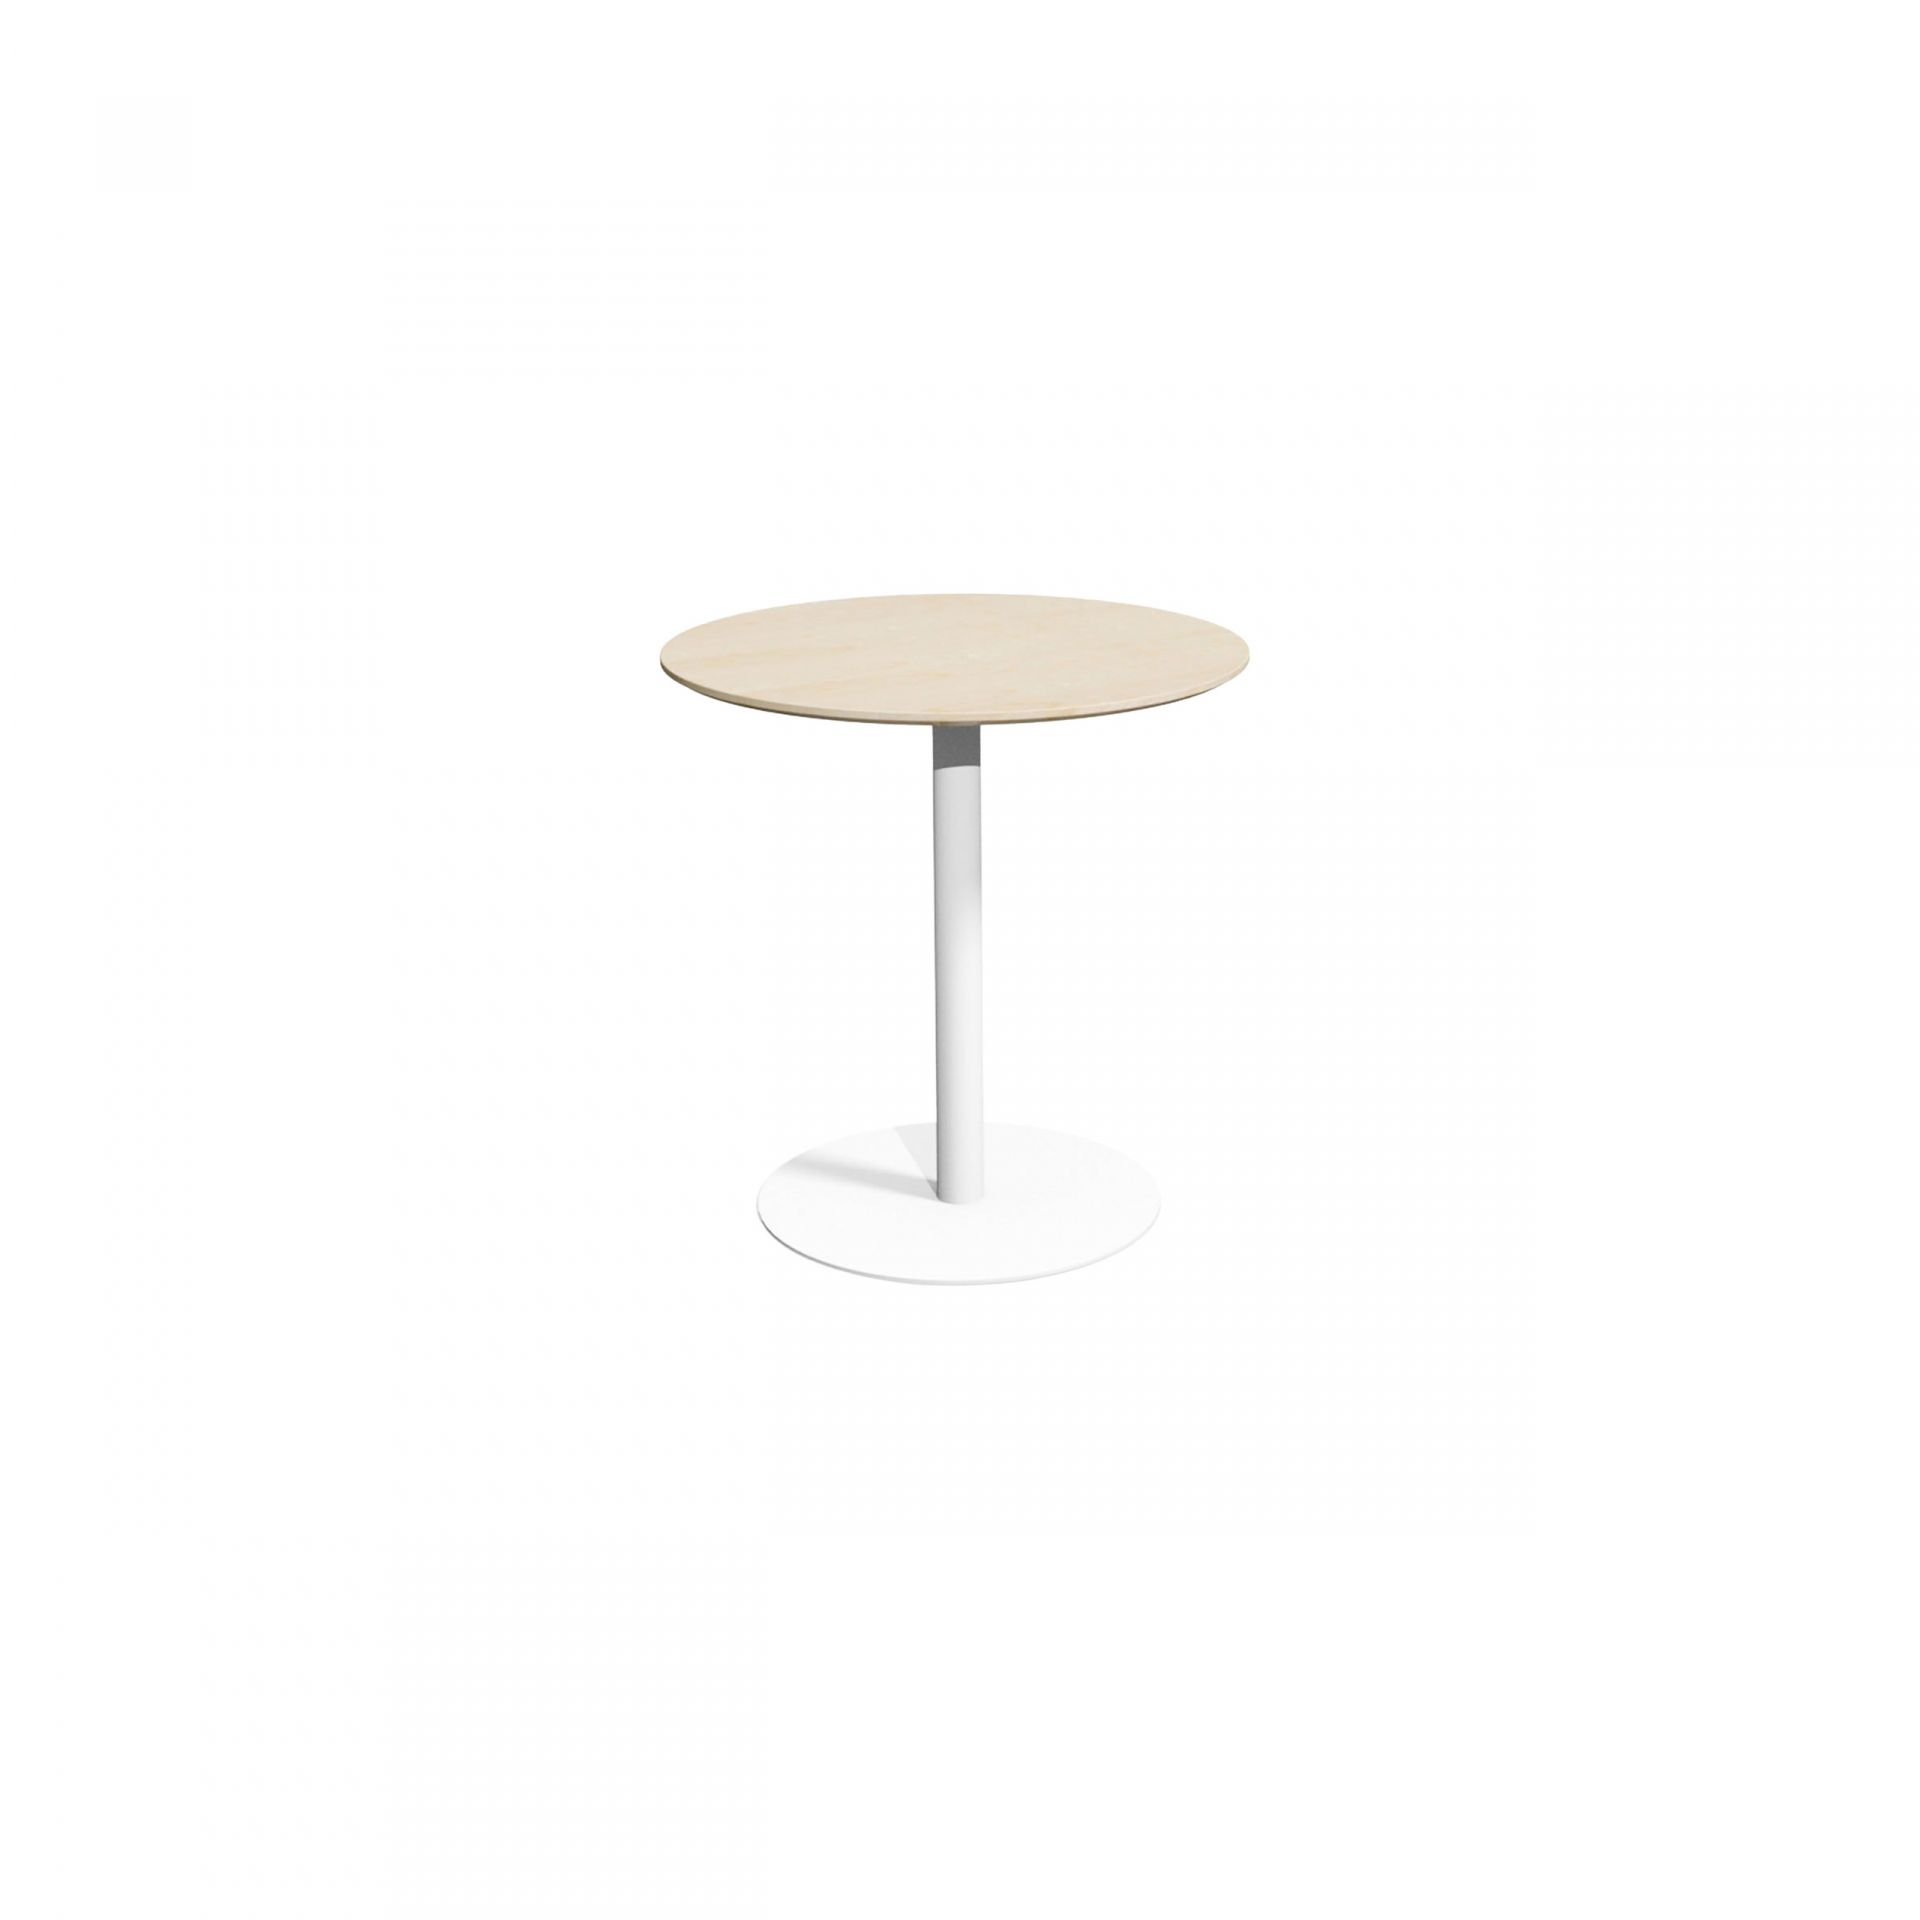 Chat Lounge pillar table product image 2